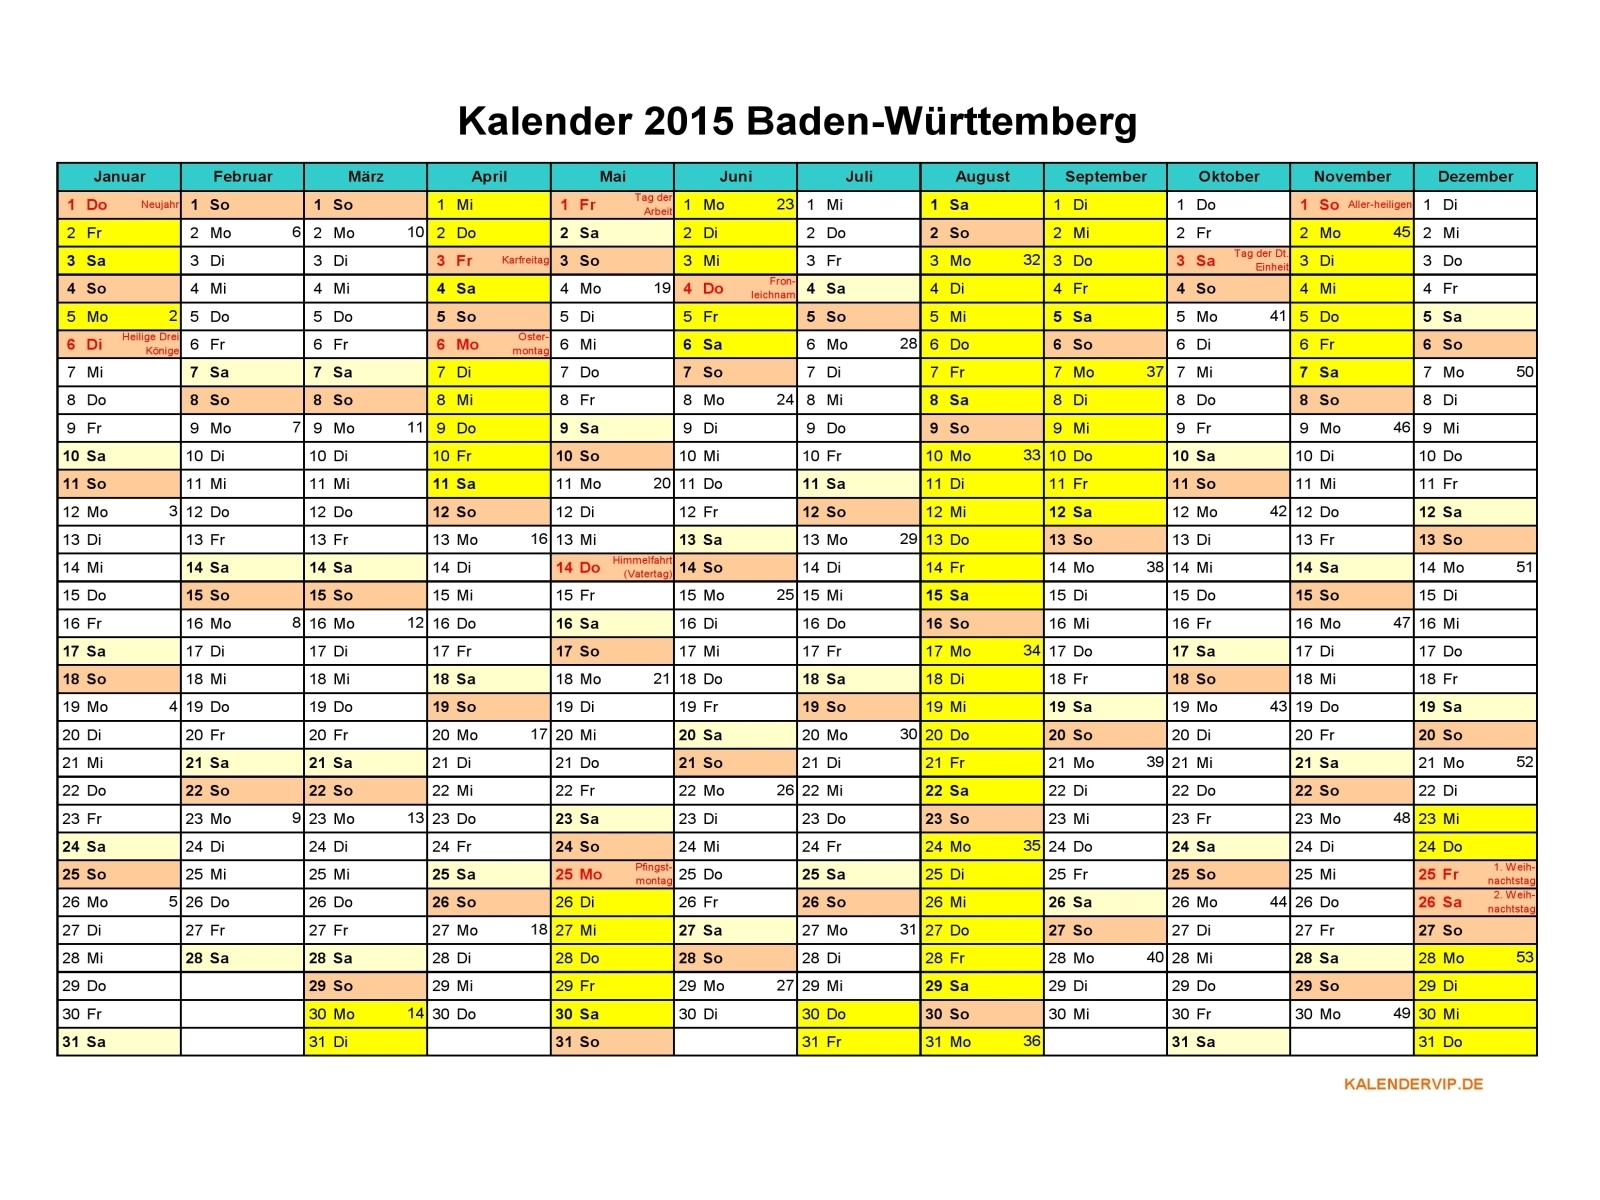 kalender 2015 baden w rttemberg kalendervip. Black Bedroom Furniture Sets. Home Design Ideas